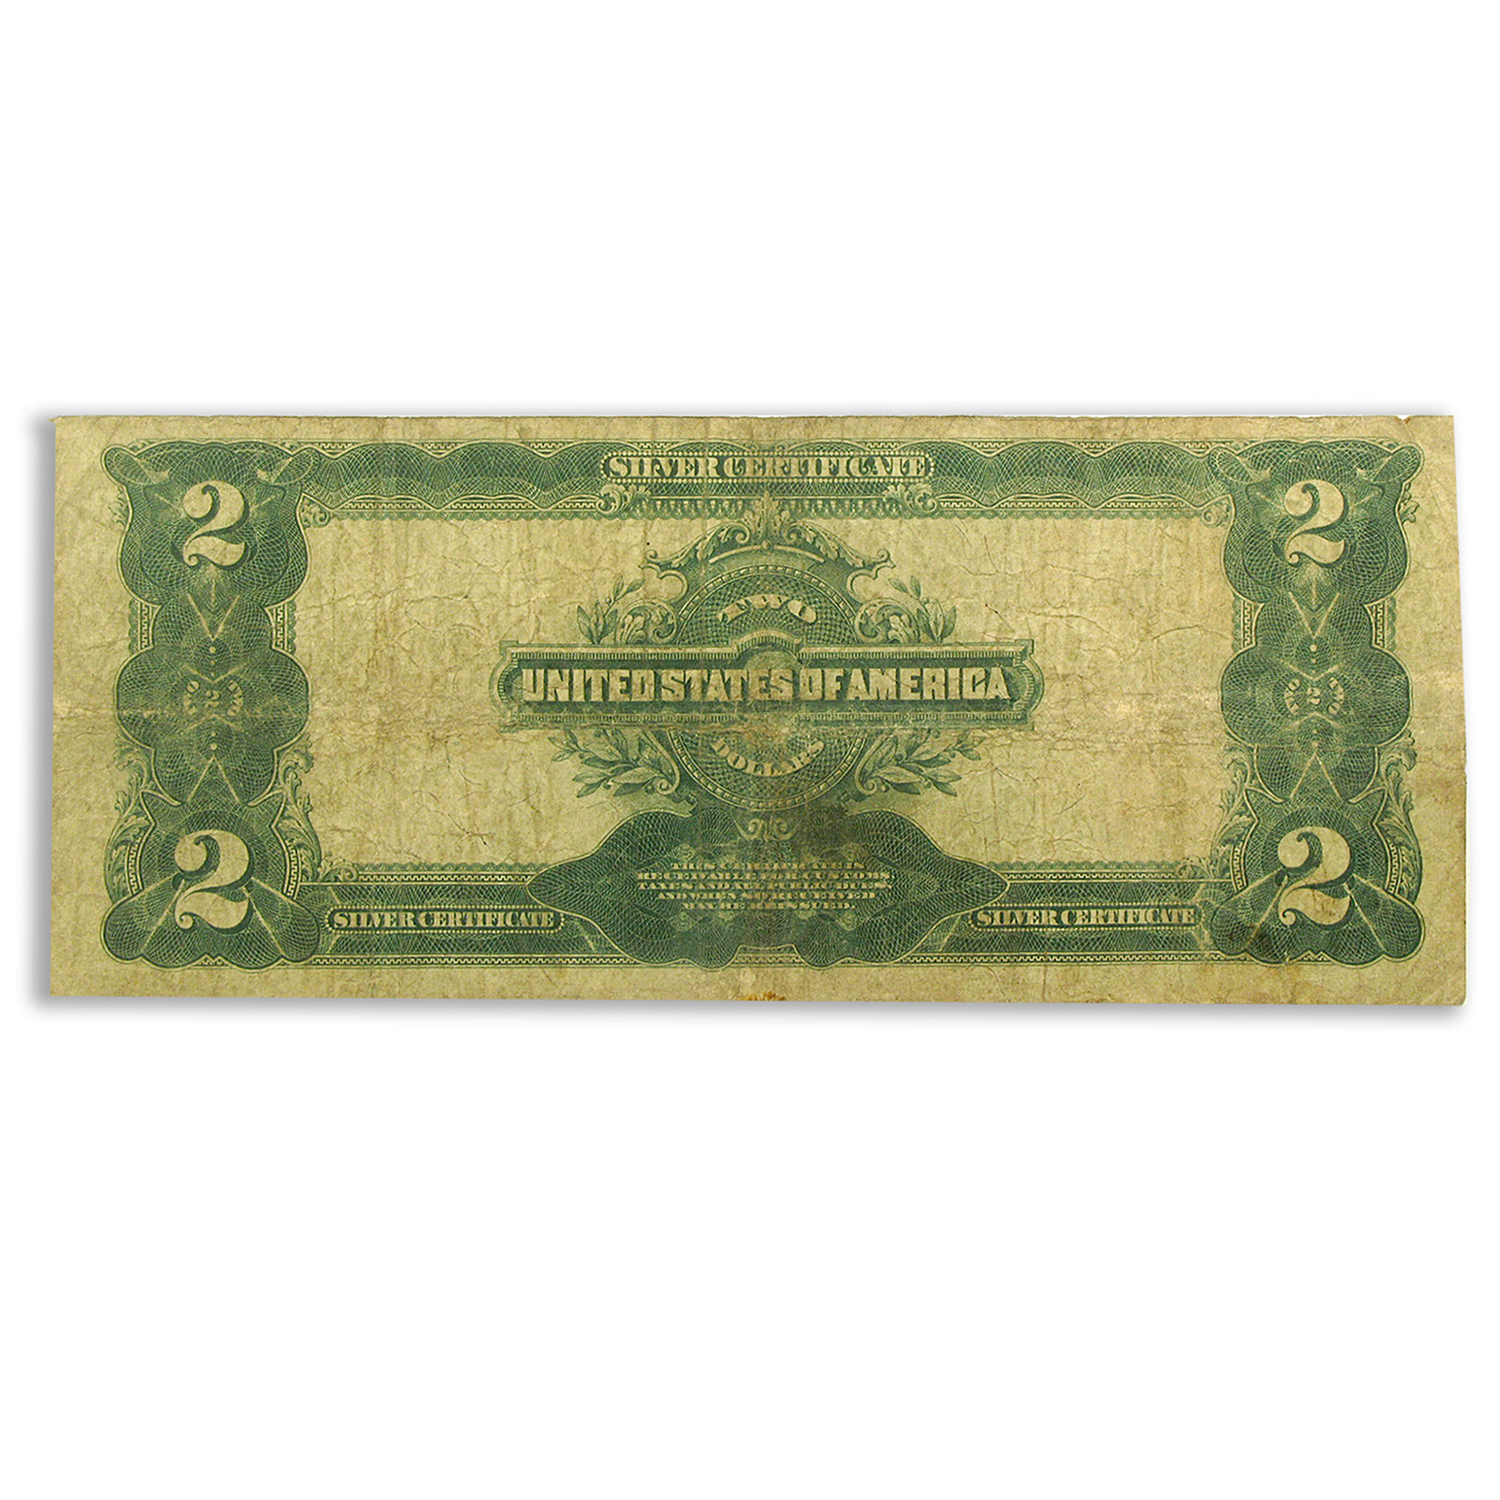 1899 $2.00 Silver Certificate VG